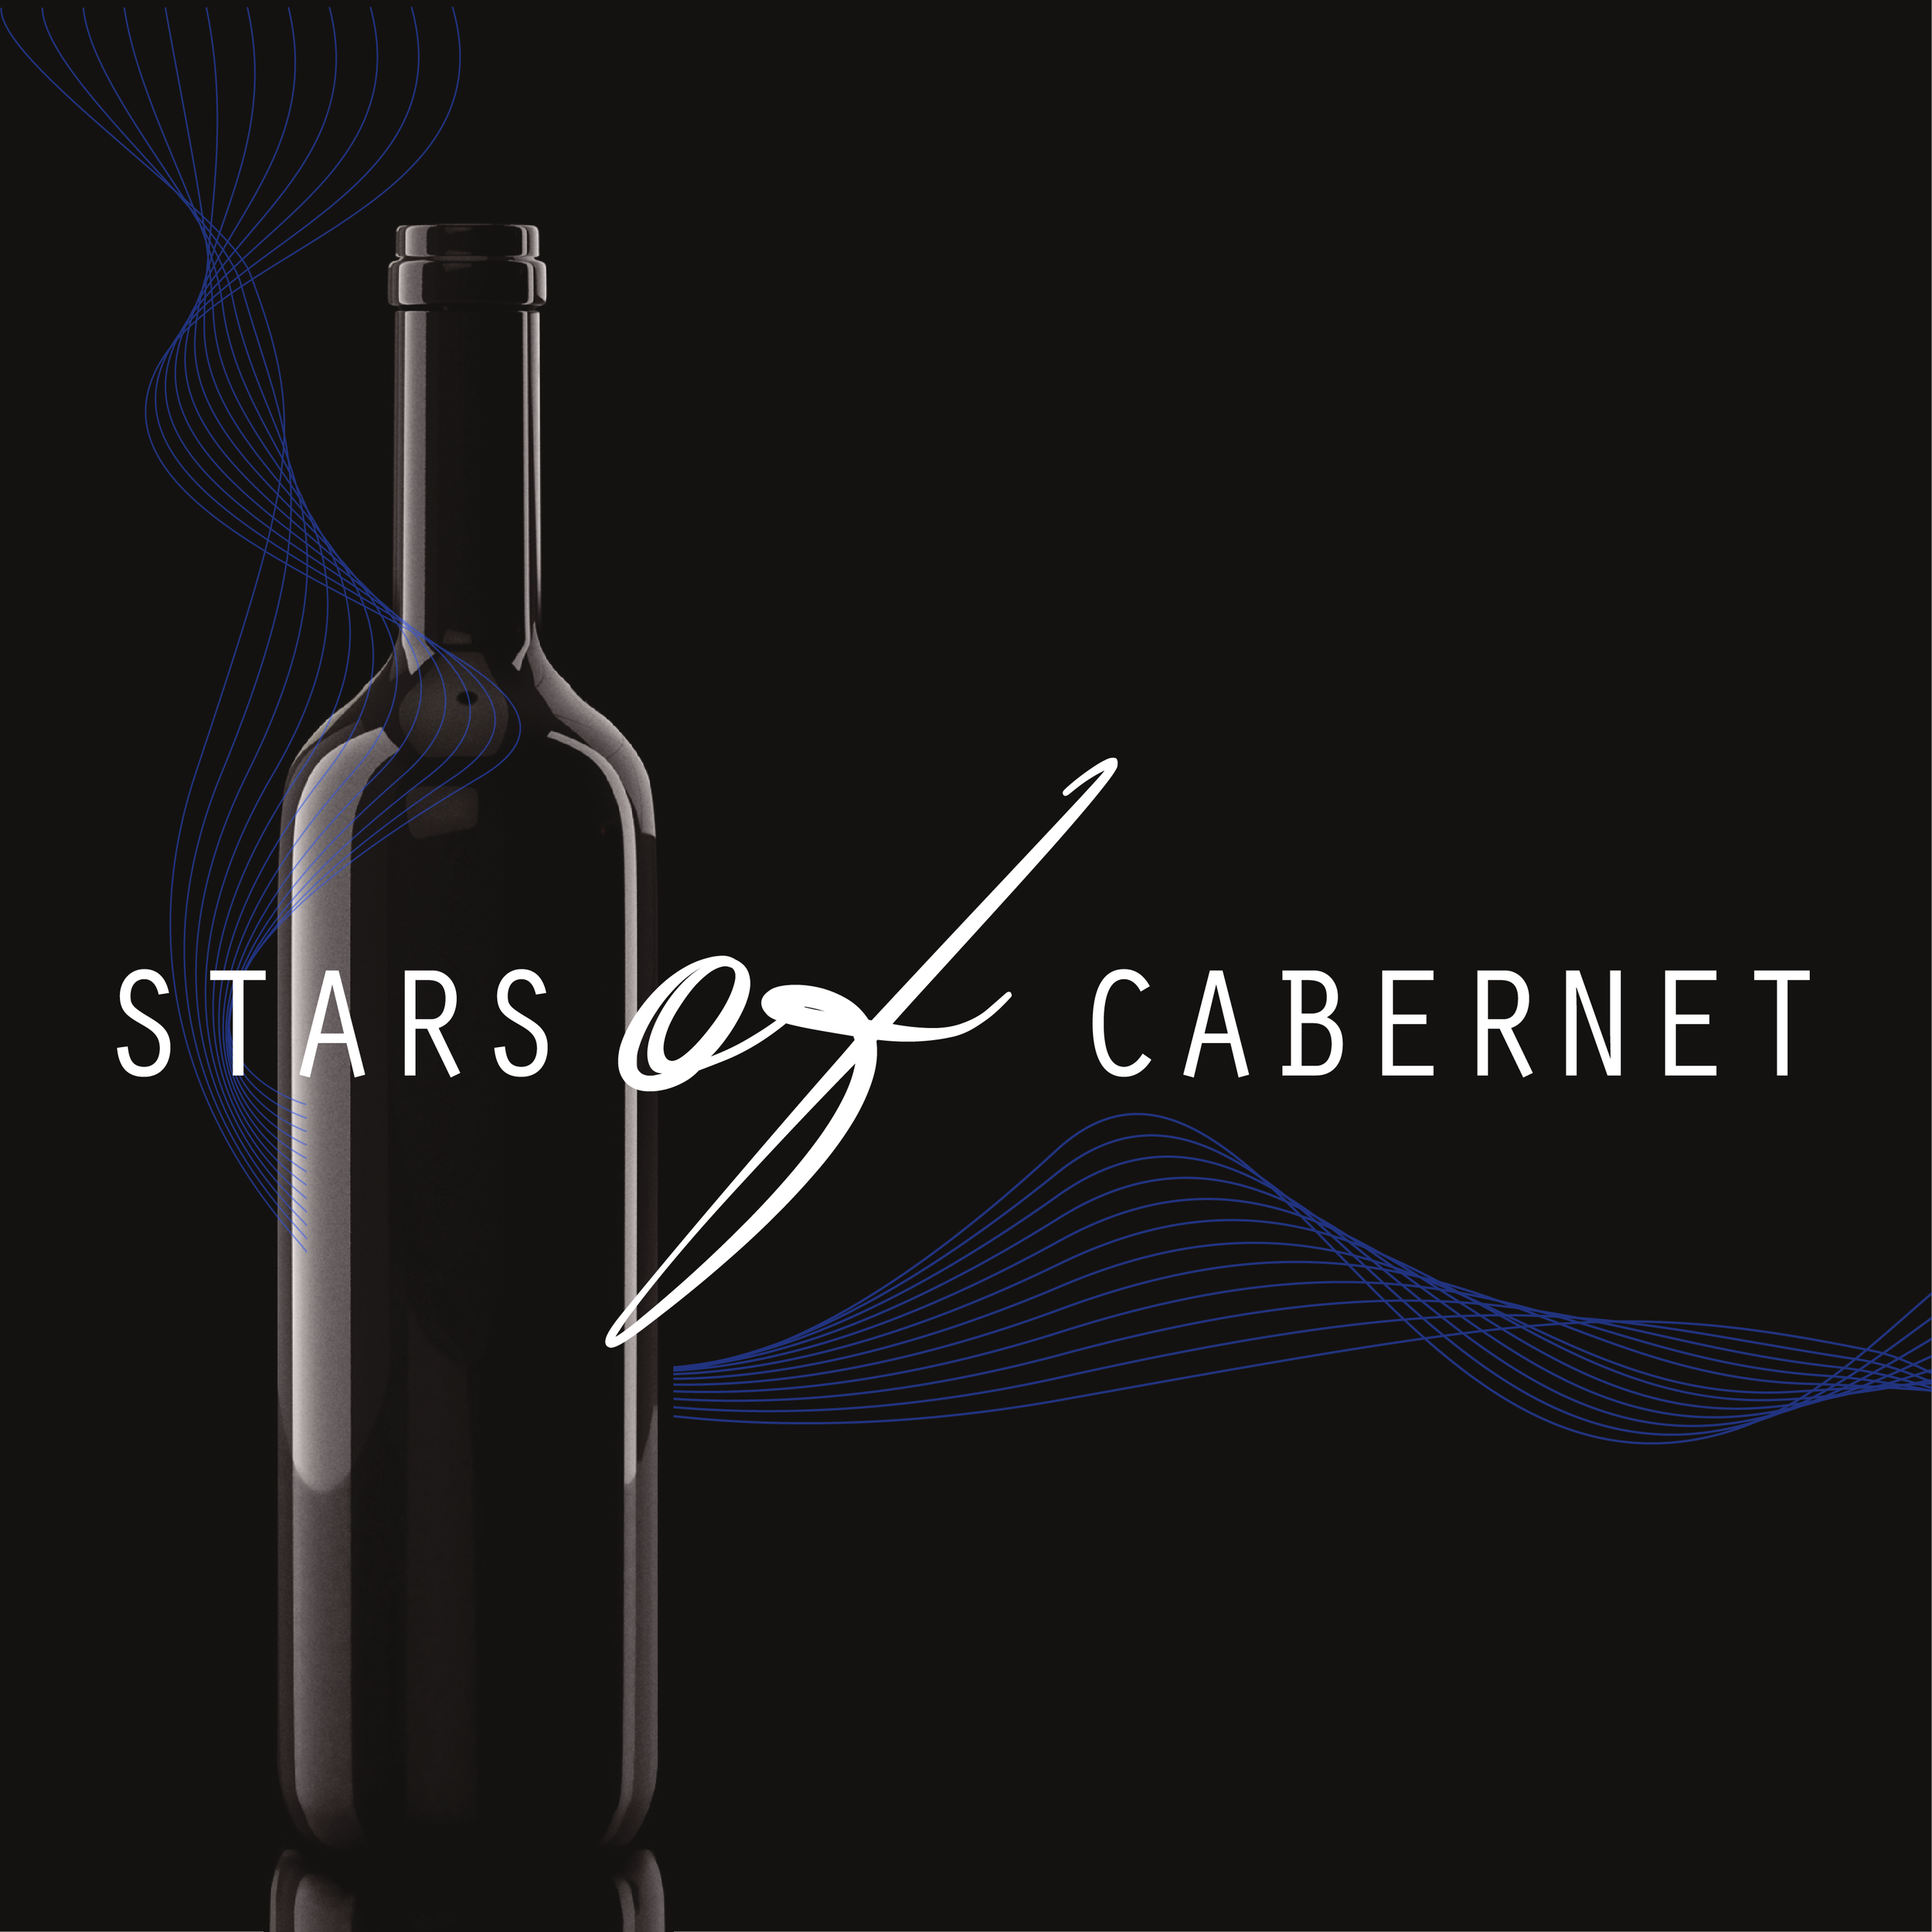 STARS of Cabernet The Peninsula Beverly Hills November 13, 2019 TBA